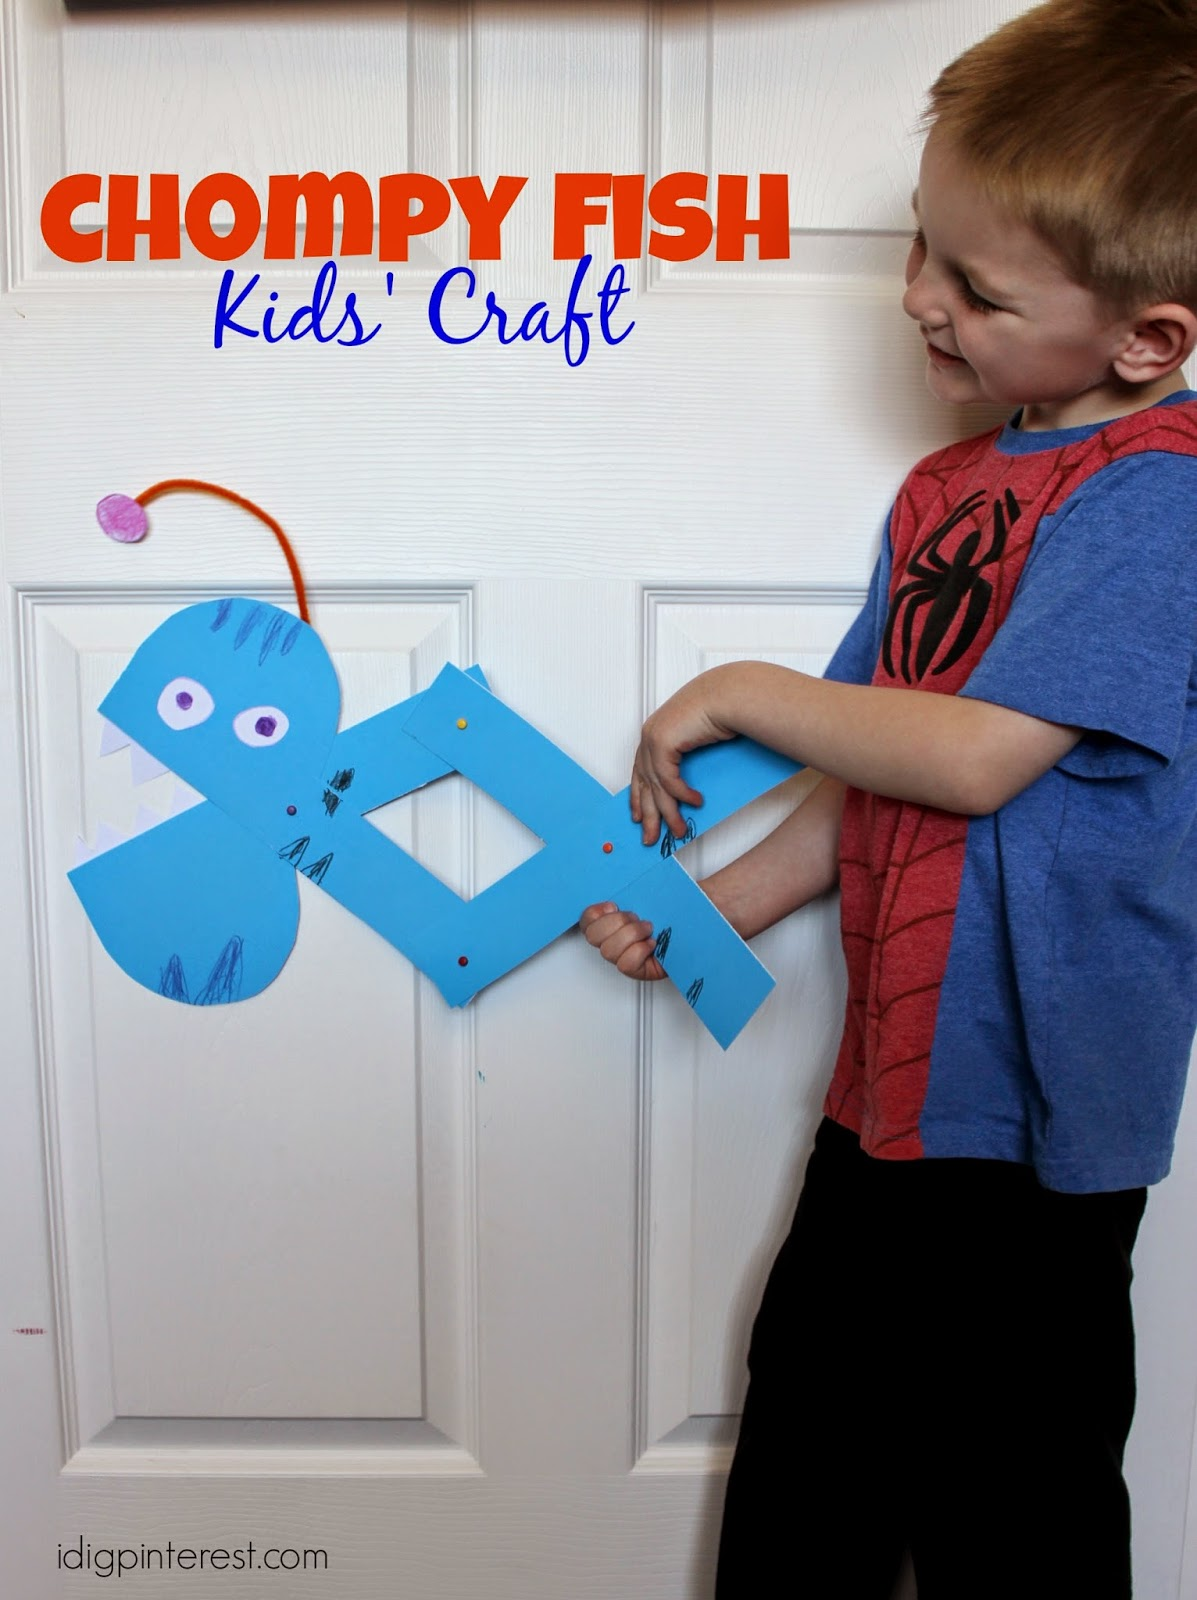 Chompy Fish Kids Craft I Dig Pinterest